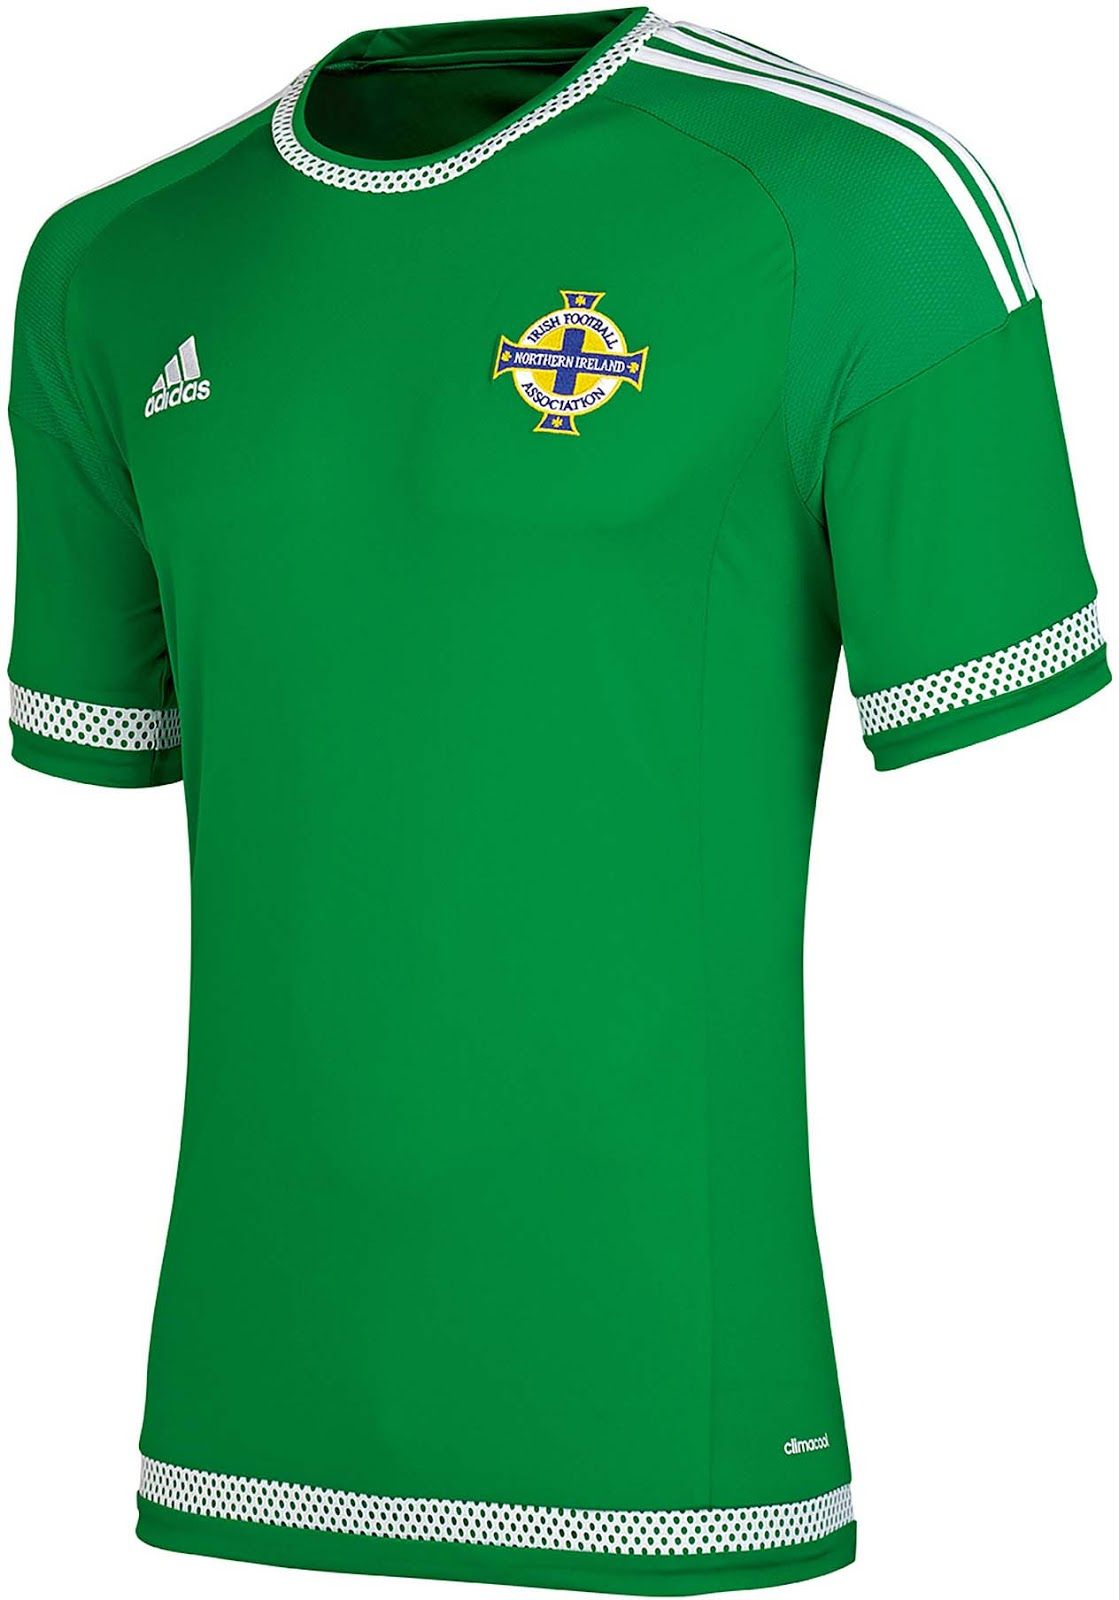 8ad2b51ed Northern Ireland (Irish Football Association) - 2015 Adidas Home Shirt